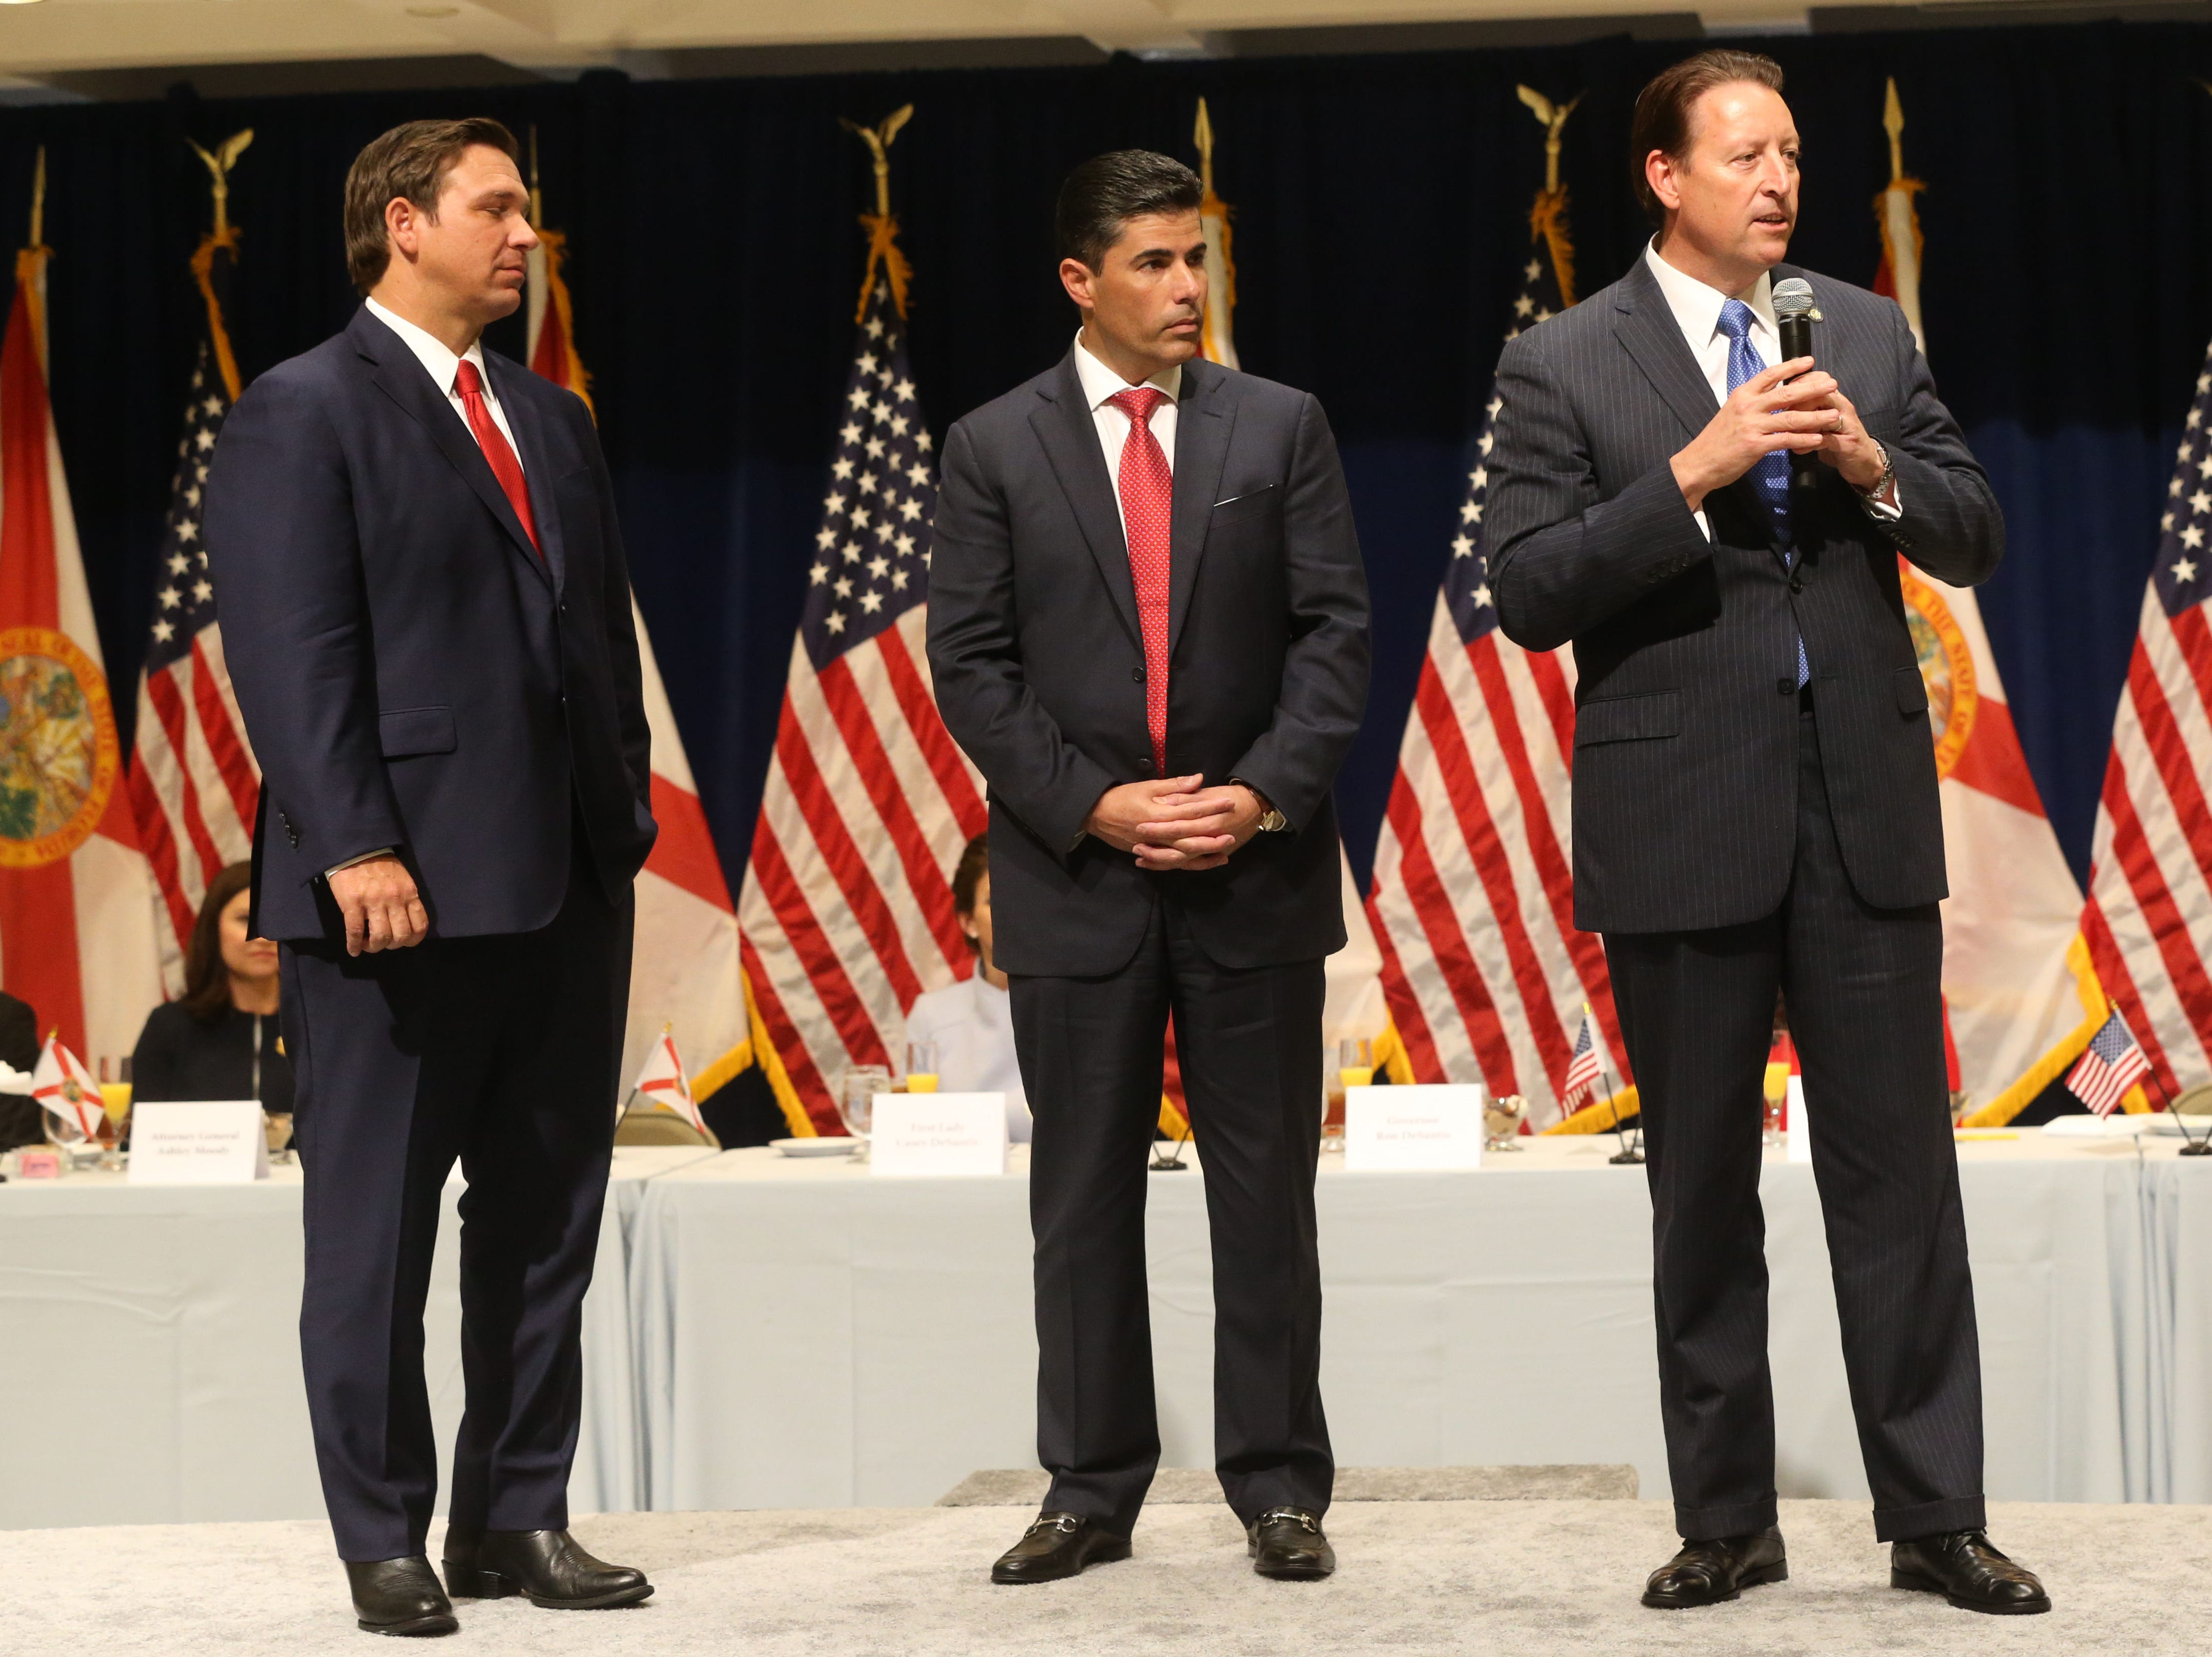 For the first time in Inaugural history, Gov. Ron DeSantis addresses FloridaÕs Legislative leaders and Cabinet officials. DeSantis discusses his plans to work with our stateÕs elected leaders to achieve a Bold Vision for a Brighter Future, Tuesday, Jan. 8, 2019. Gov. Ron DeSantis, left, stands with House Speaker Jose Oliva, as Senate President Bill Galvano gives a short speech.